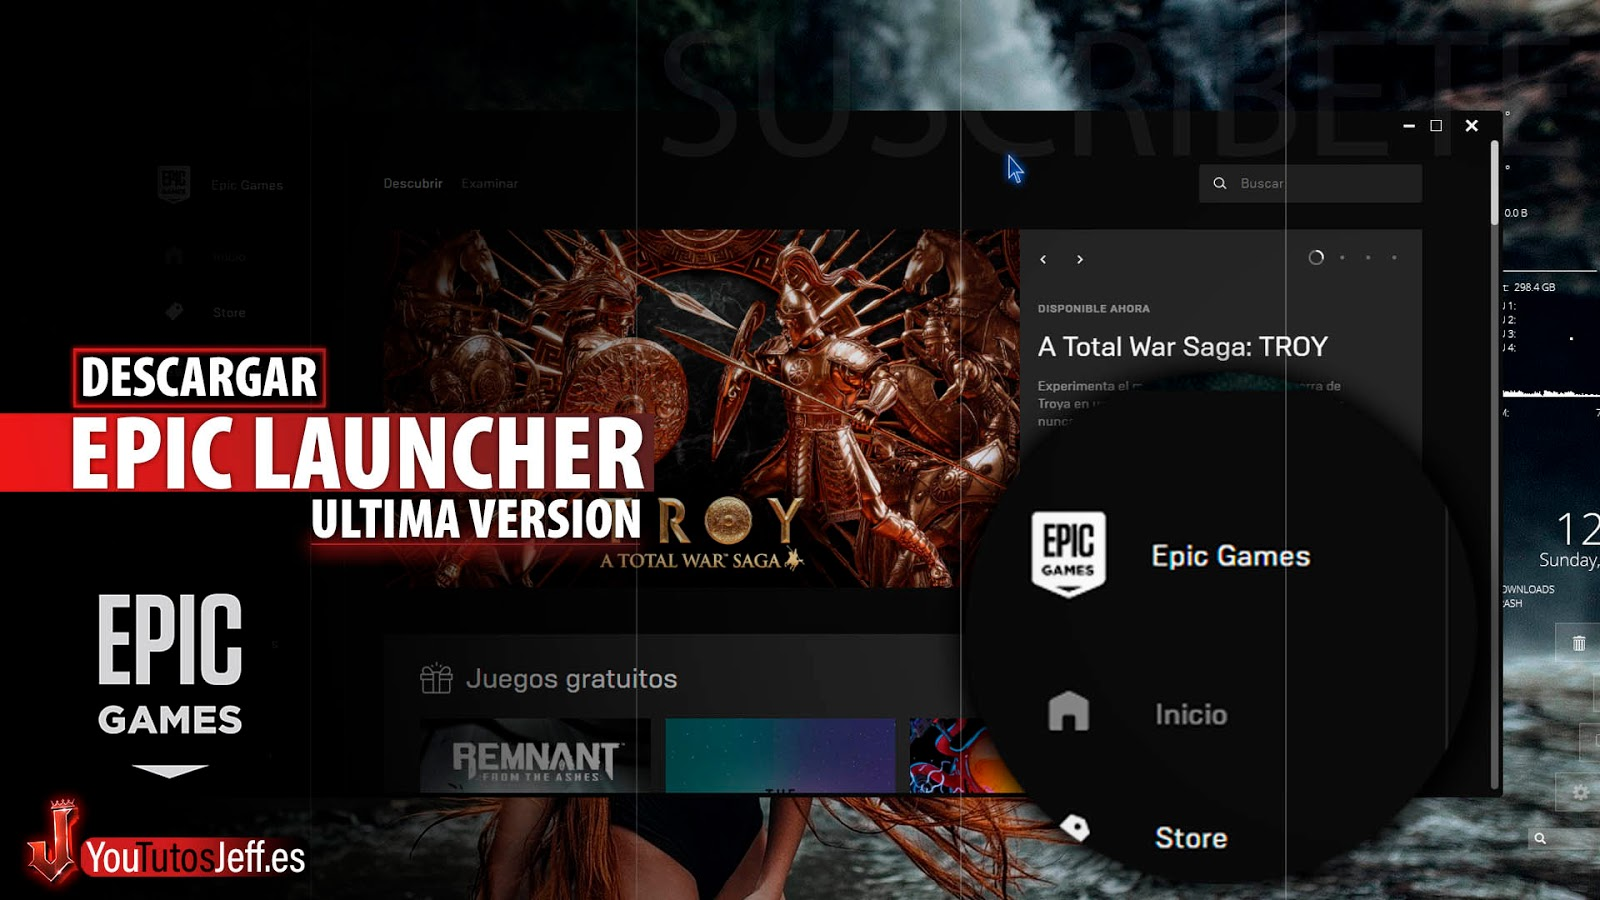 Como Descargar Epic Games Launcher Ultima Versión para PC